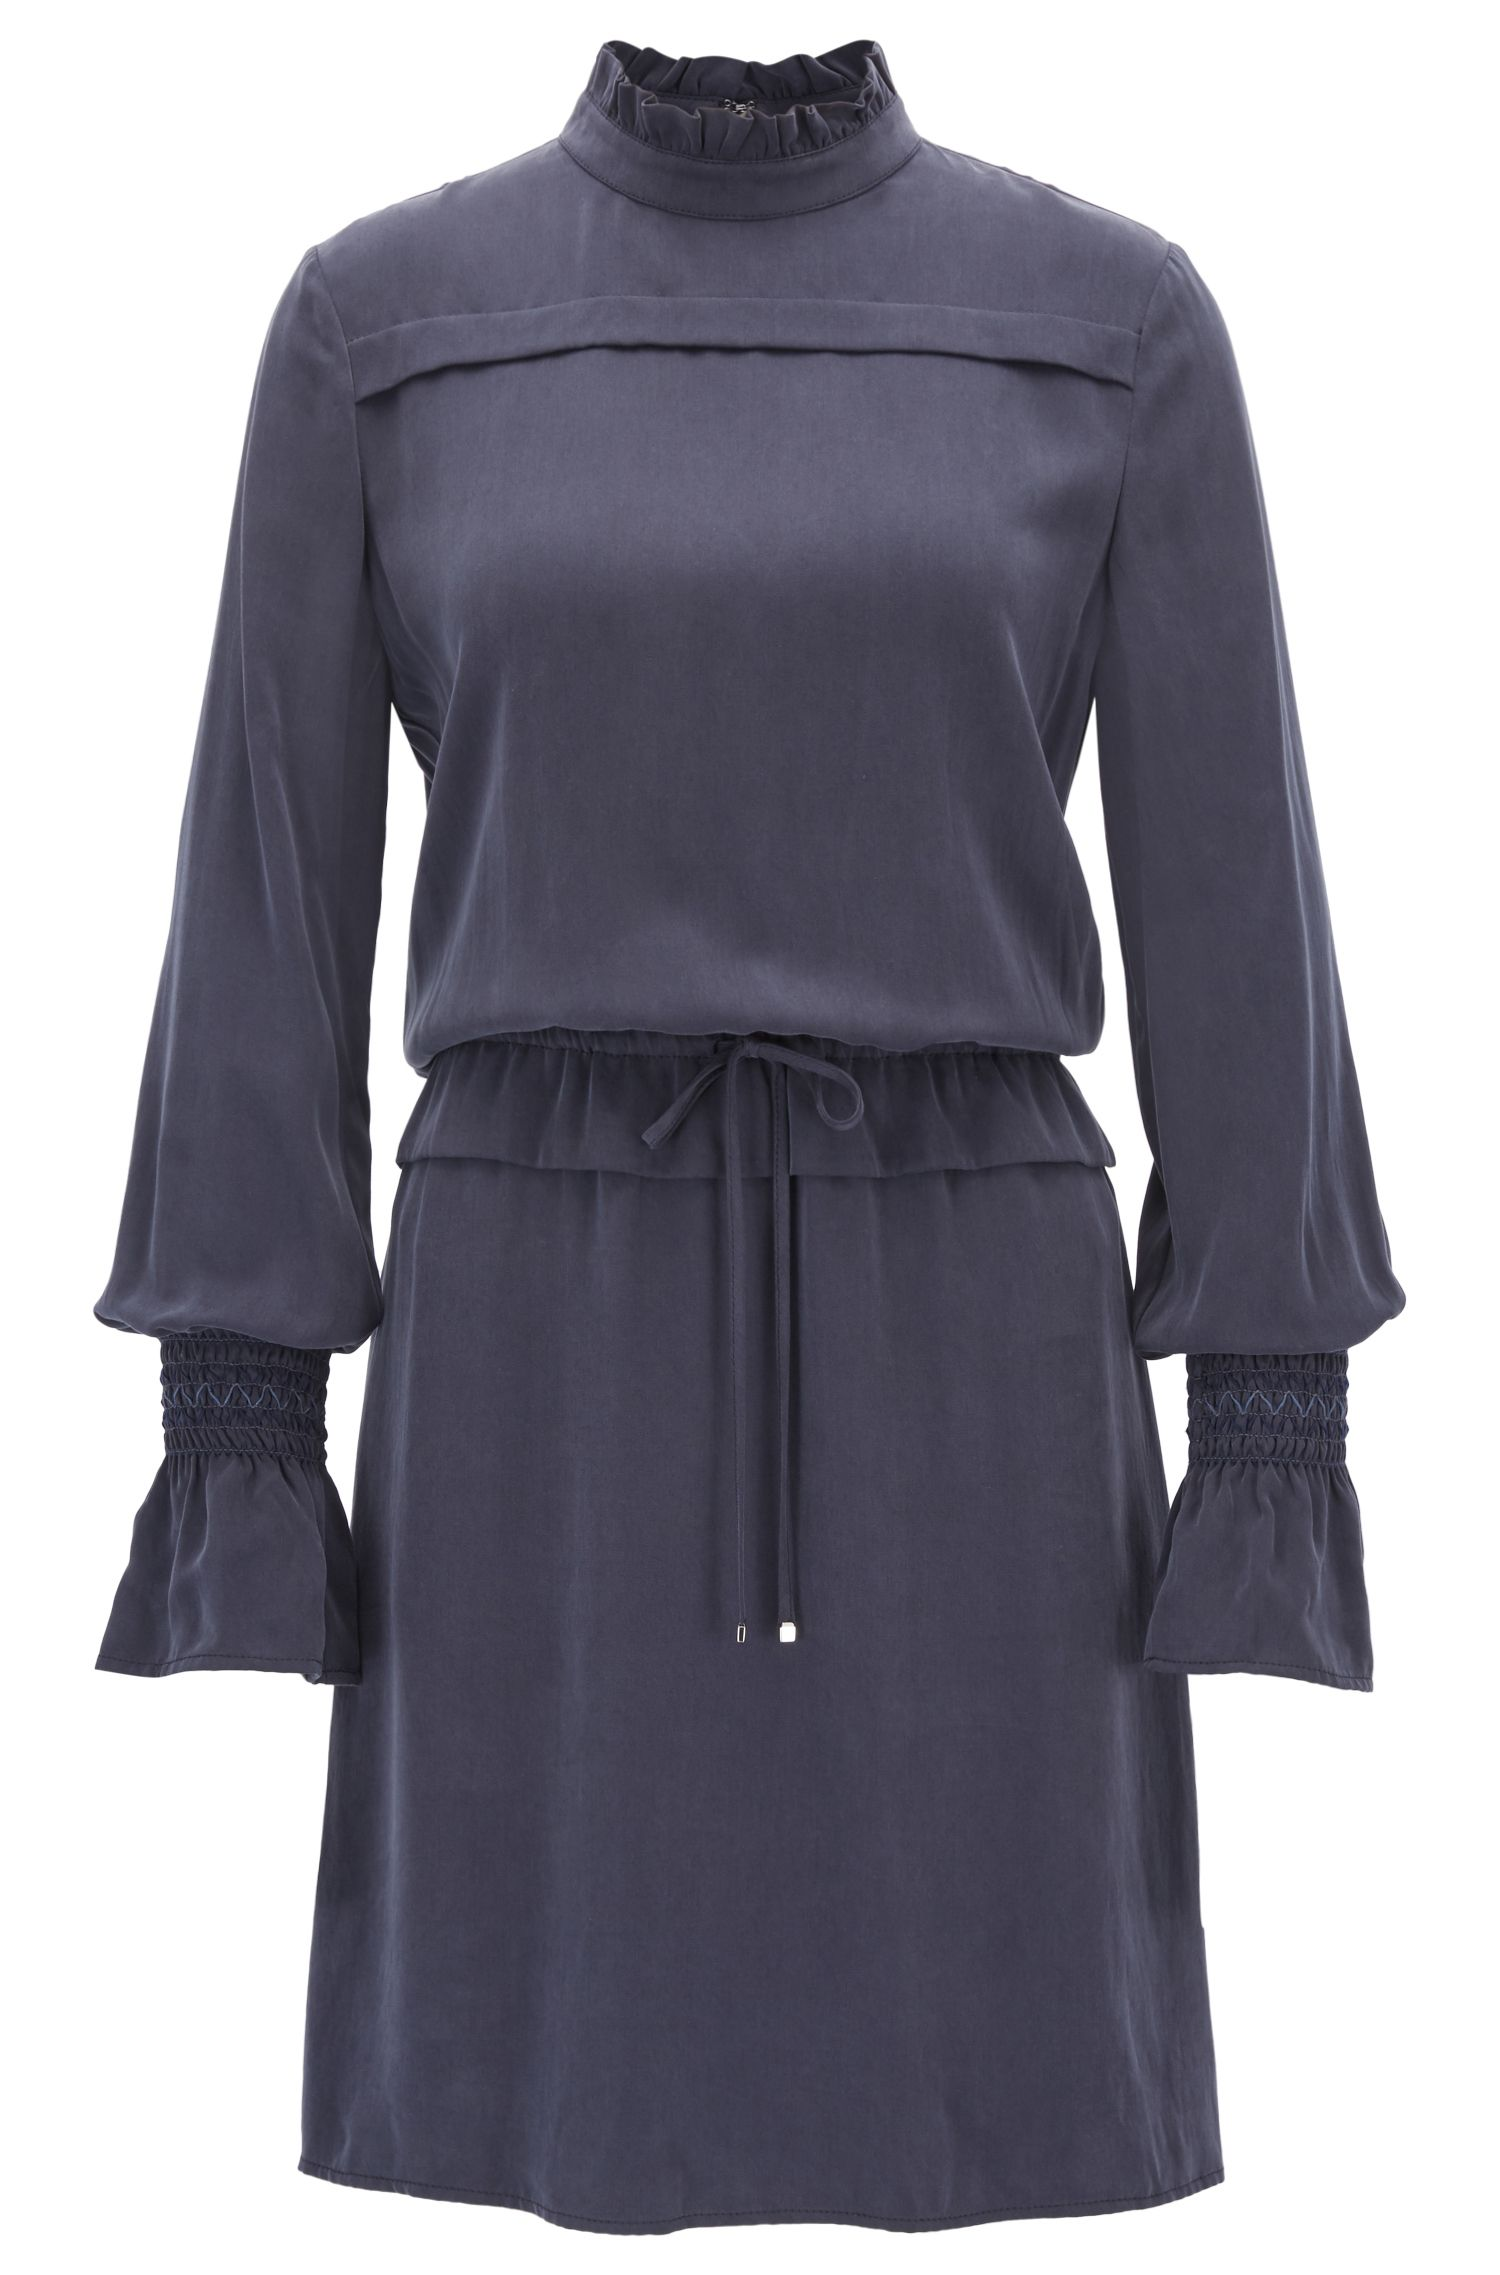 Modal dress with ruffle trims